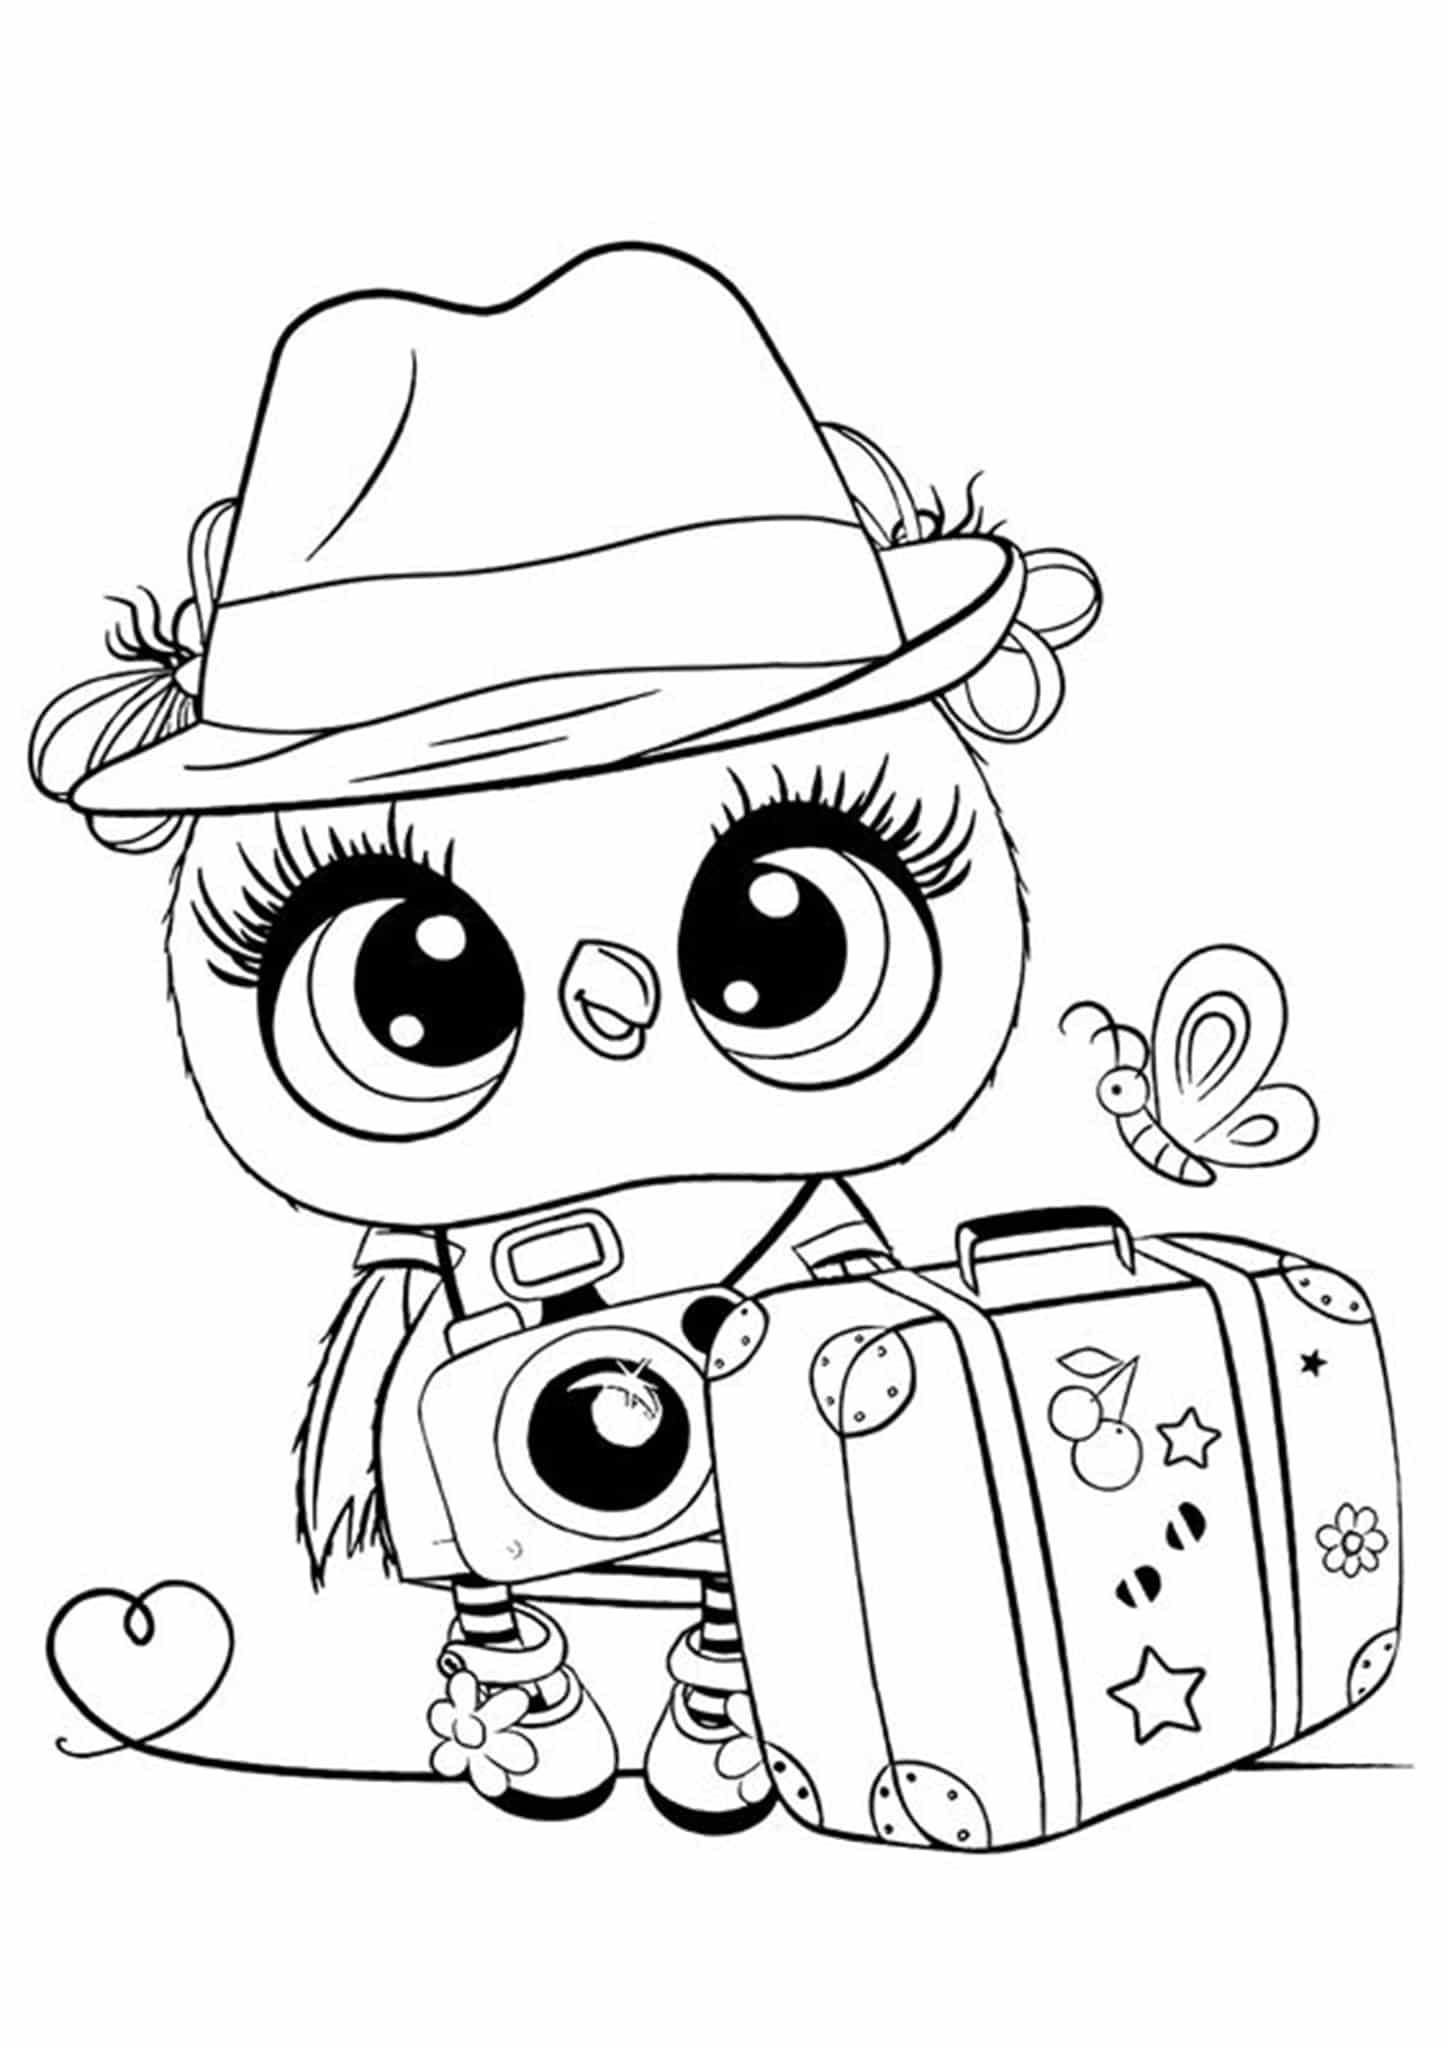 free pictures to print get this adult coloring pages animals butterfly 1 pictures free print to